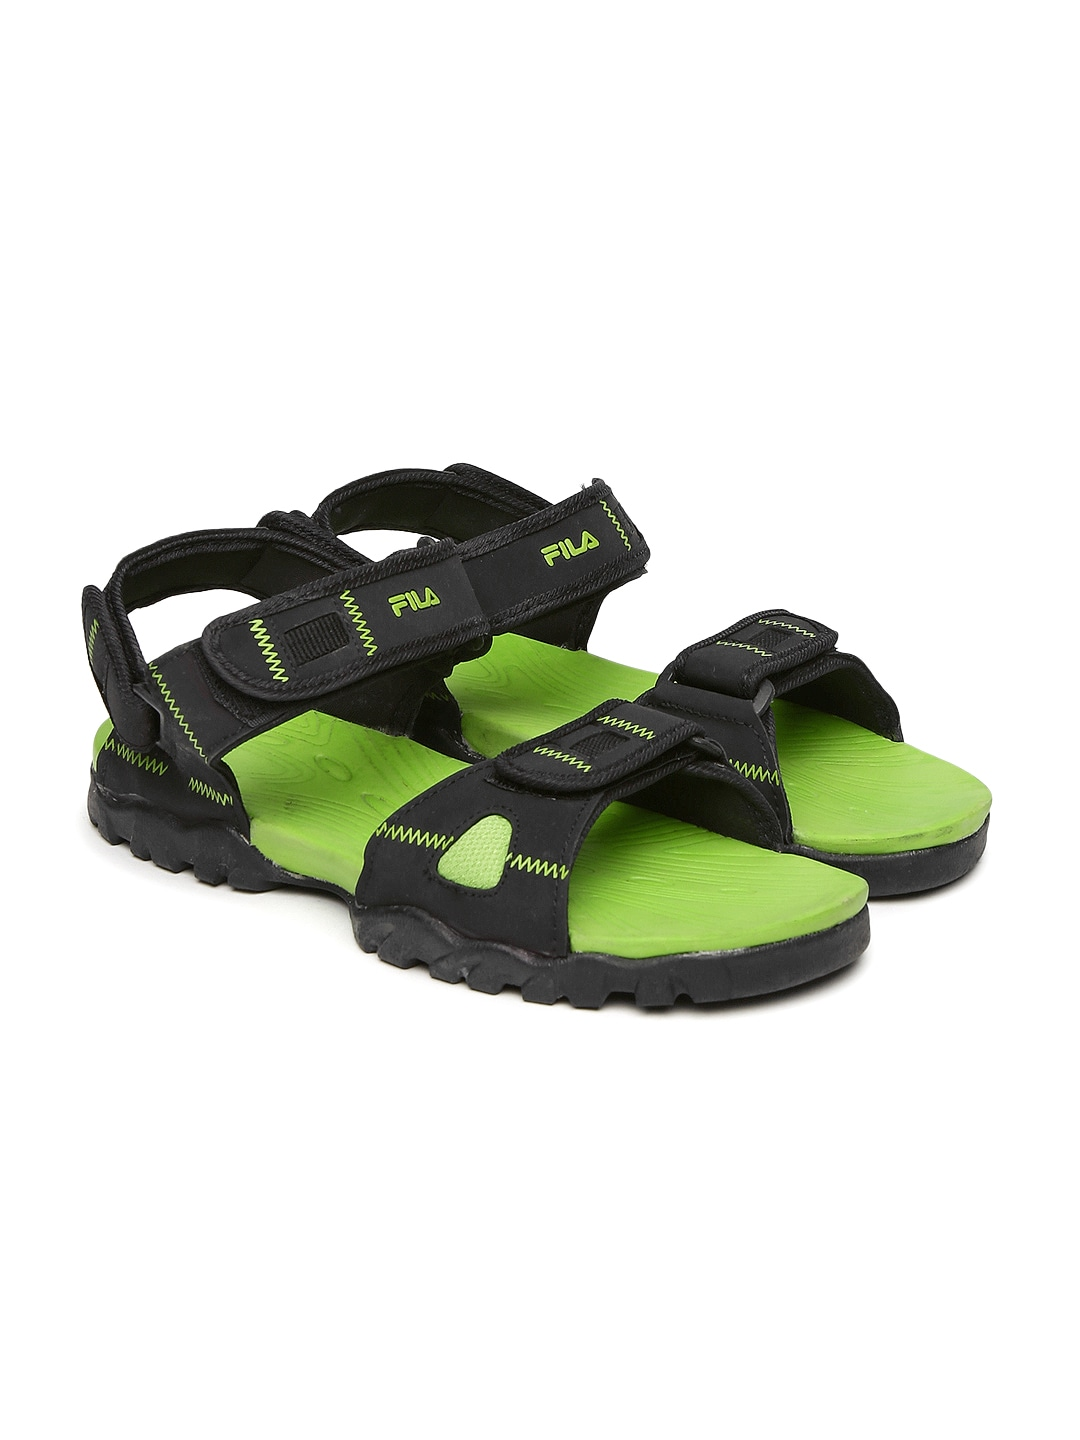 3dbca667755b Men s Fila Sandals - Buy Fila Sandals for Men Online in India